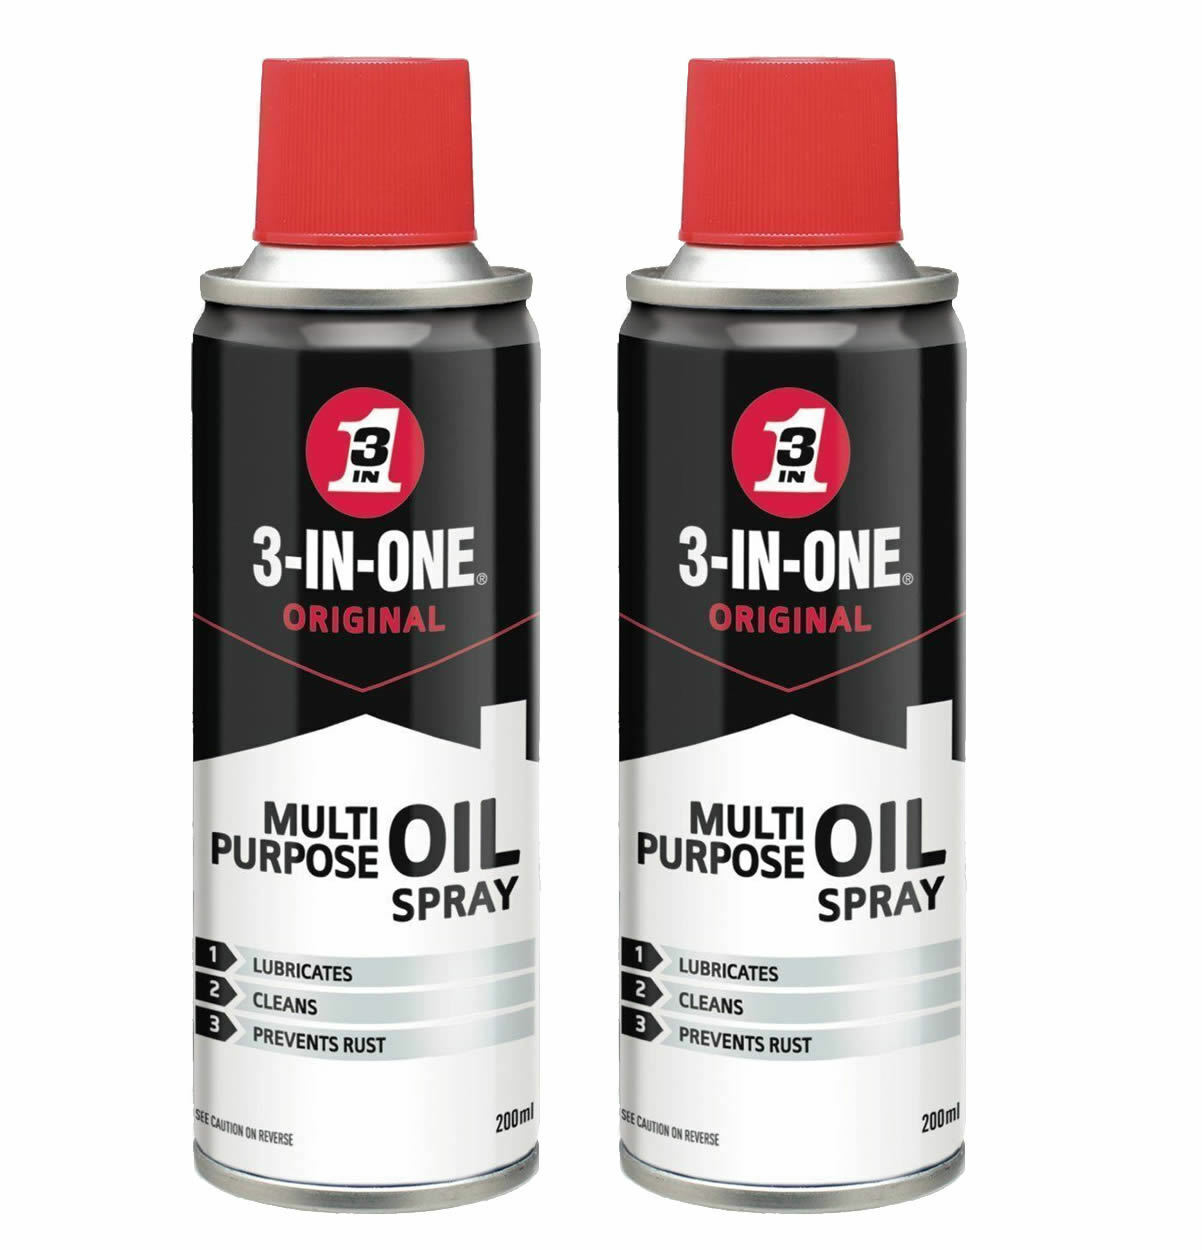 2 x 3 IN ONE MULTIPURPOSE USE LUBRICANT LUBRICATION PENERTRATING OIL SPRAY 200ml